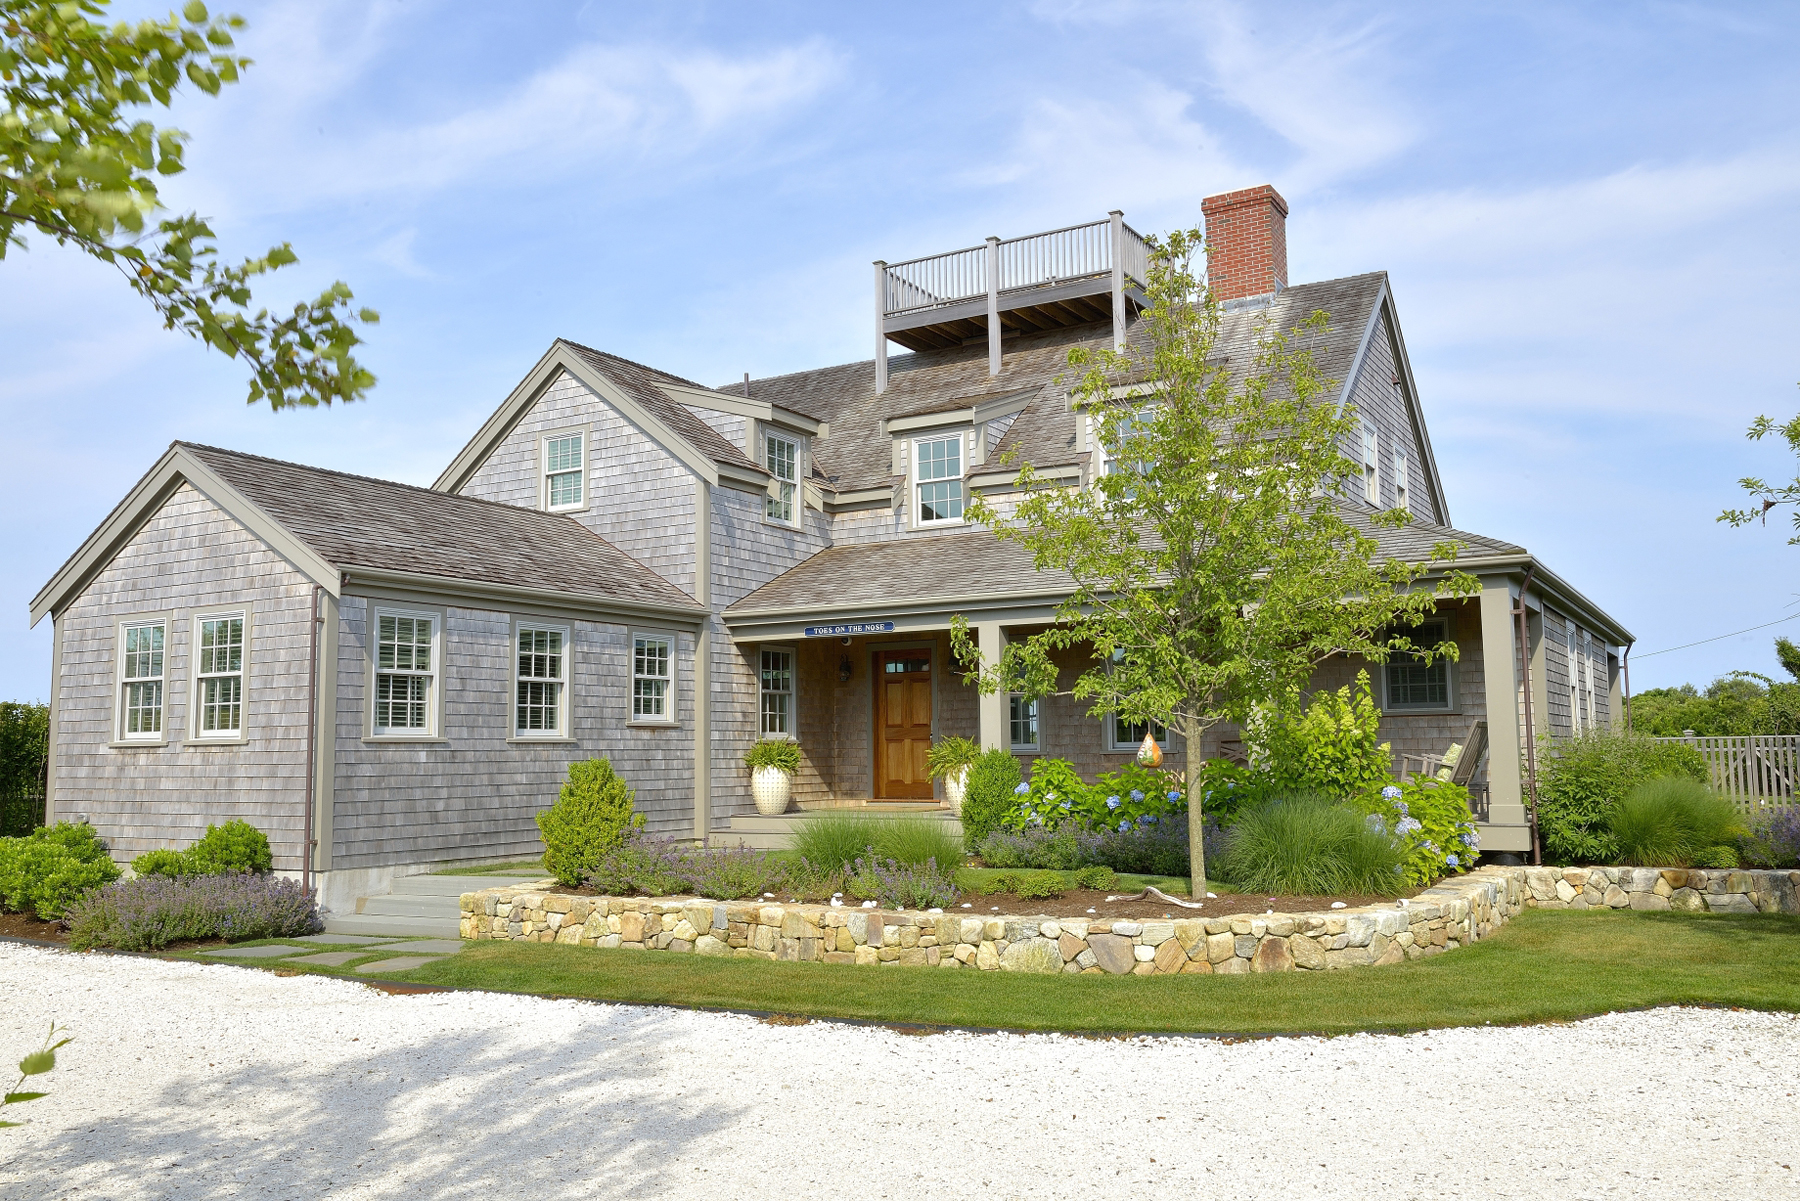 Single Family Home for Sale at Splendor in Squam 107 Squam Road Nantucket, Massachusetts 02554 United States